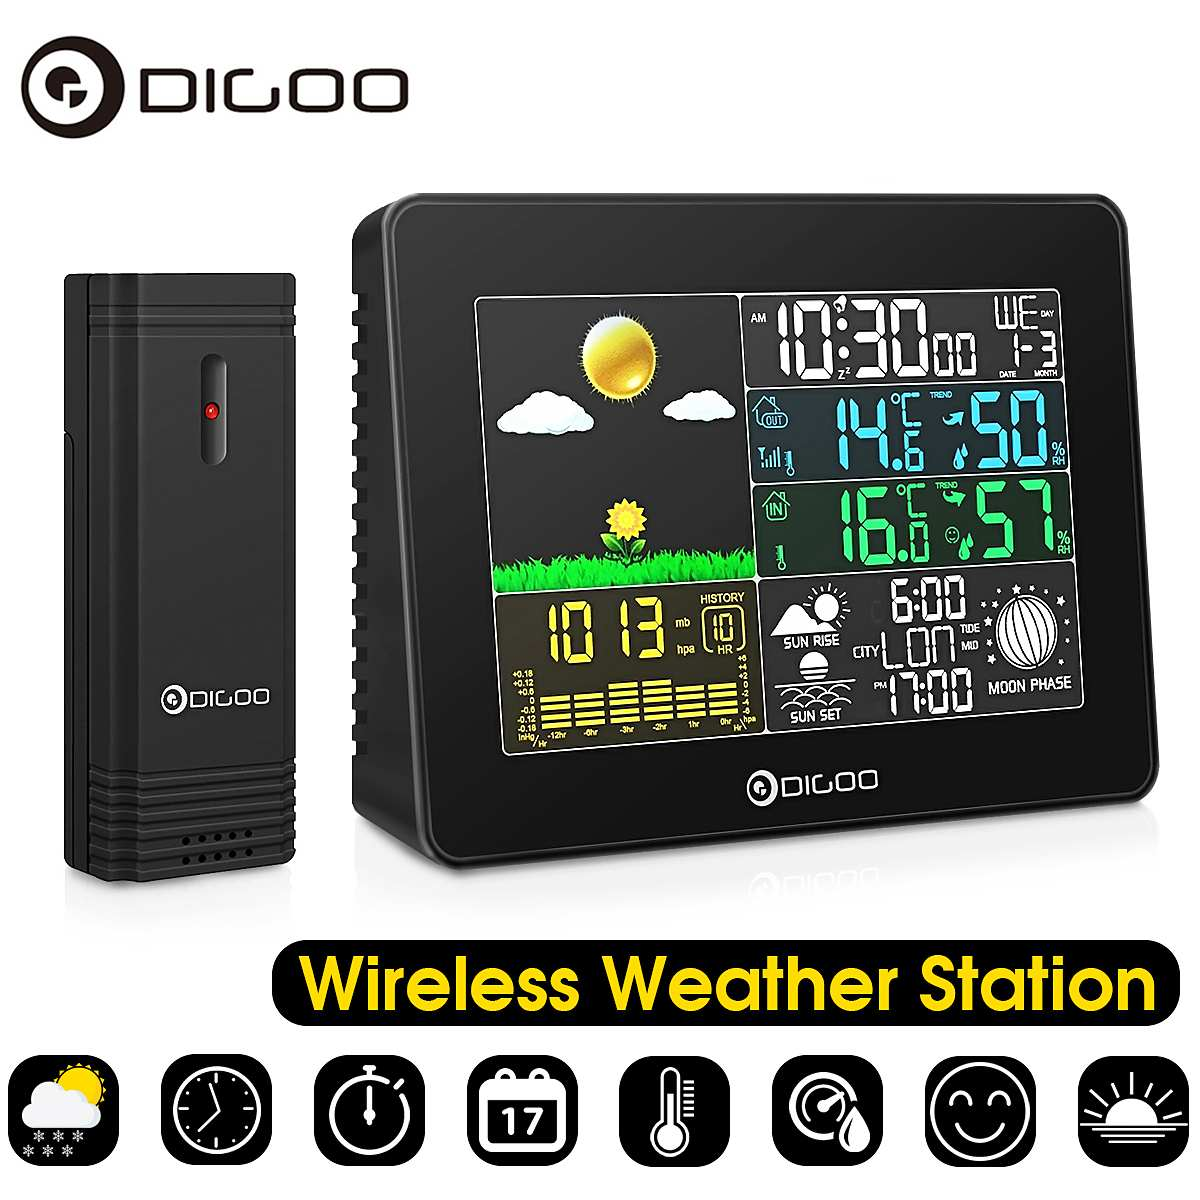 Digoo Wireless Big Screen Colour Digital Outdoor Temperature Humidity Thermometer Hygrometer Weather Forecast Sensor Alarm Clock